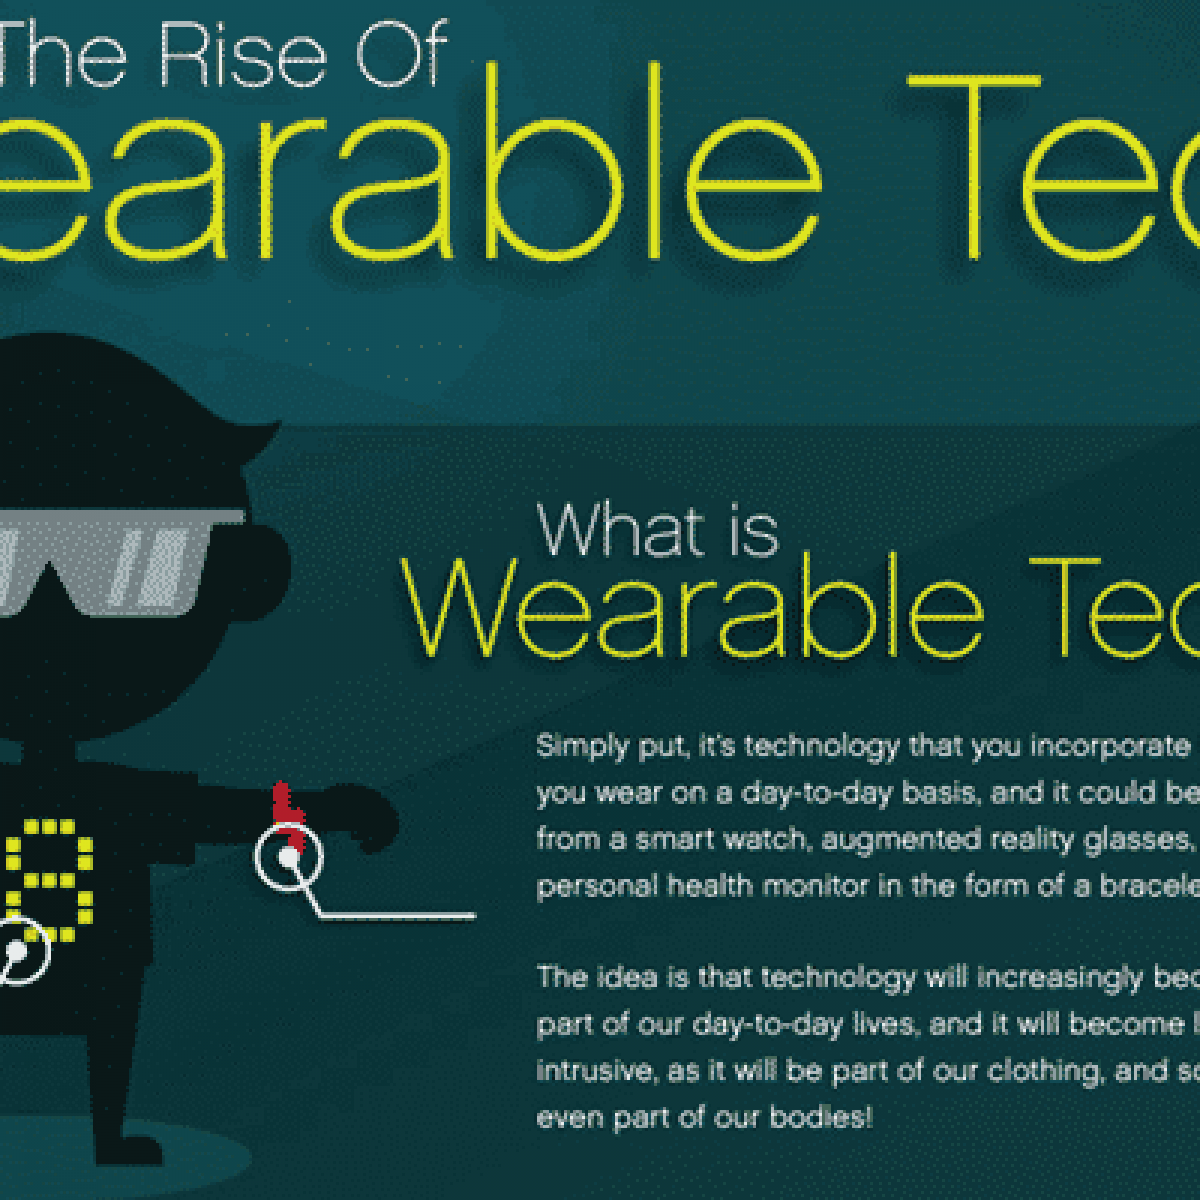 5 Things About Wearable Technology In Healthcare